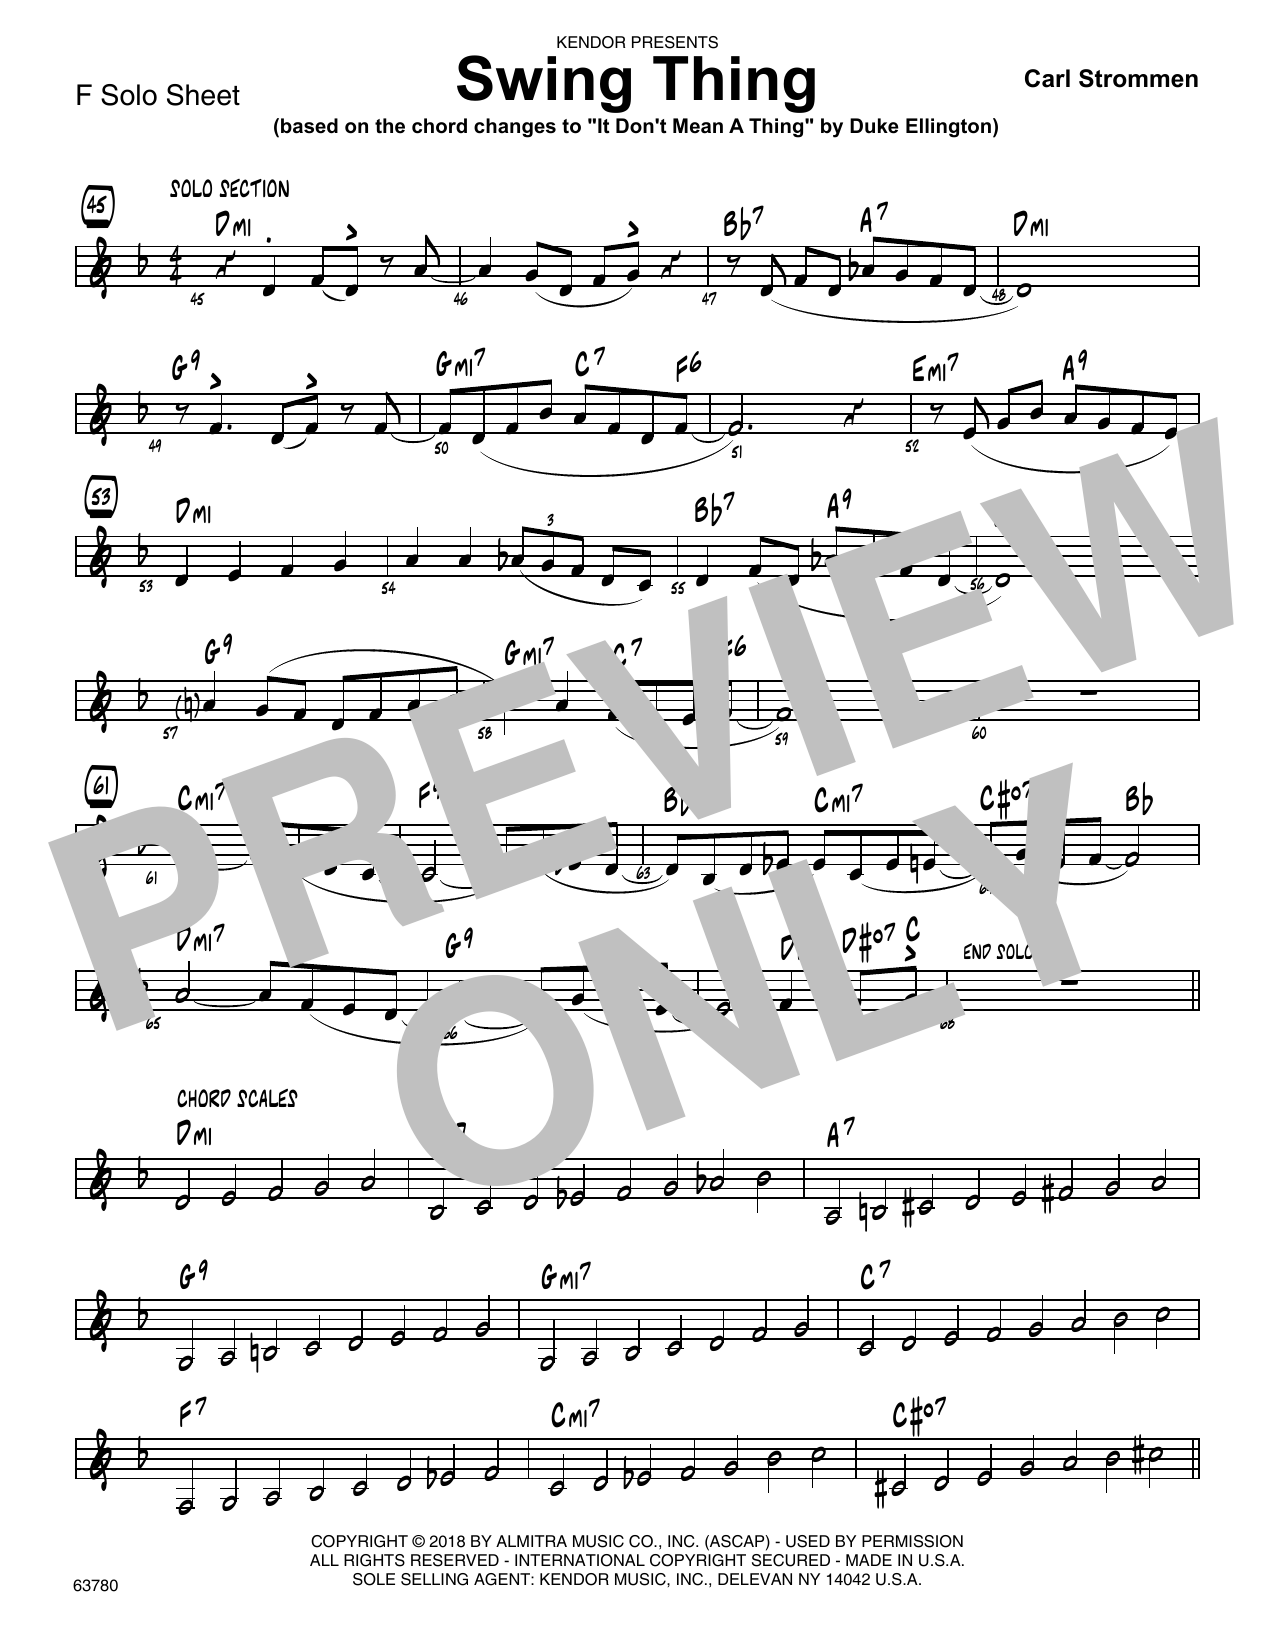 Carl Strommen Swing Thing - Solo Sheet for F Instruments sheet music preview music notes and score for Jazz Ensemble including 1 page(s)